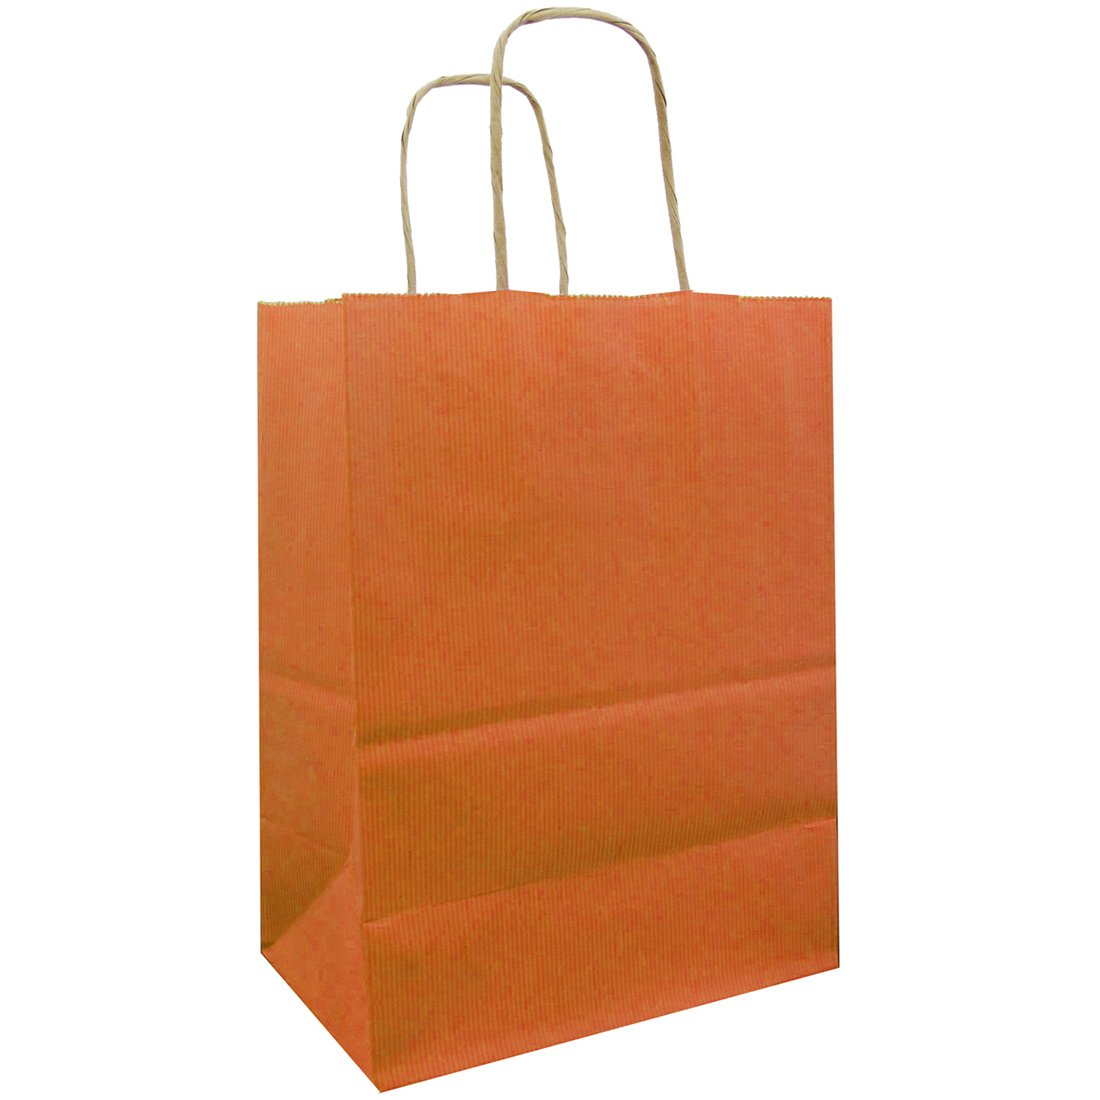 Jillson & Roberts Medium Kraft Bags, Orange